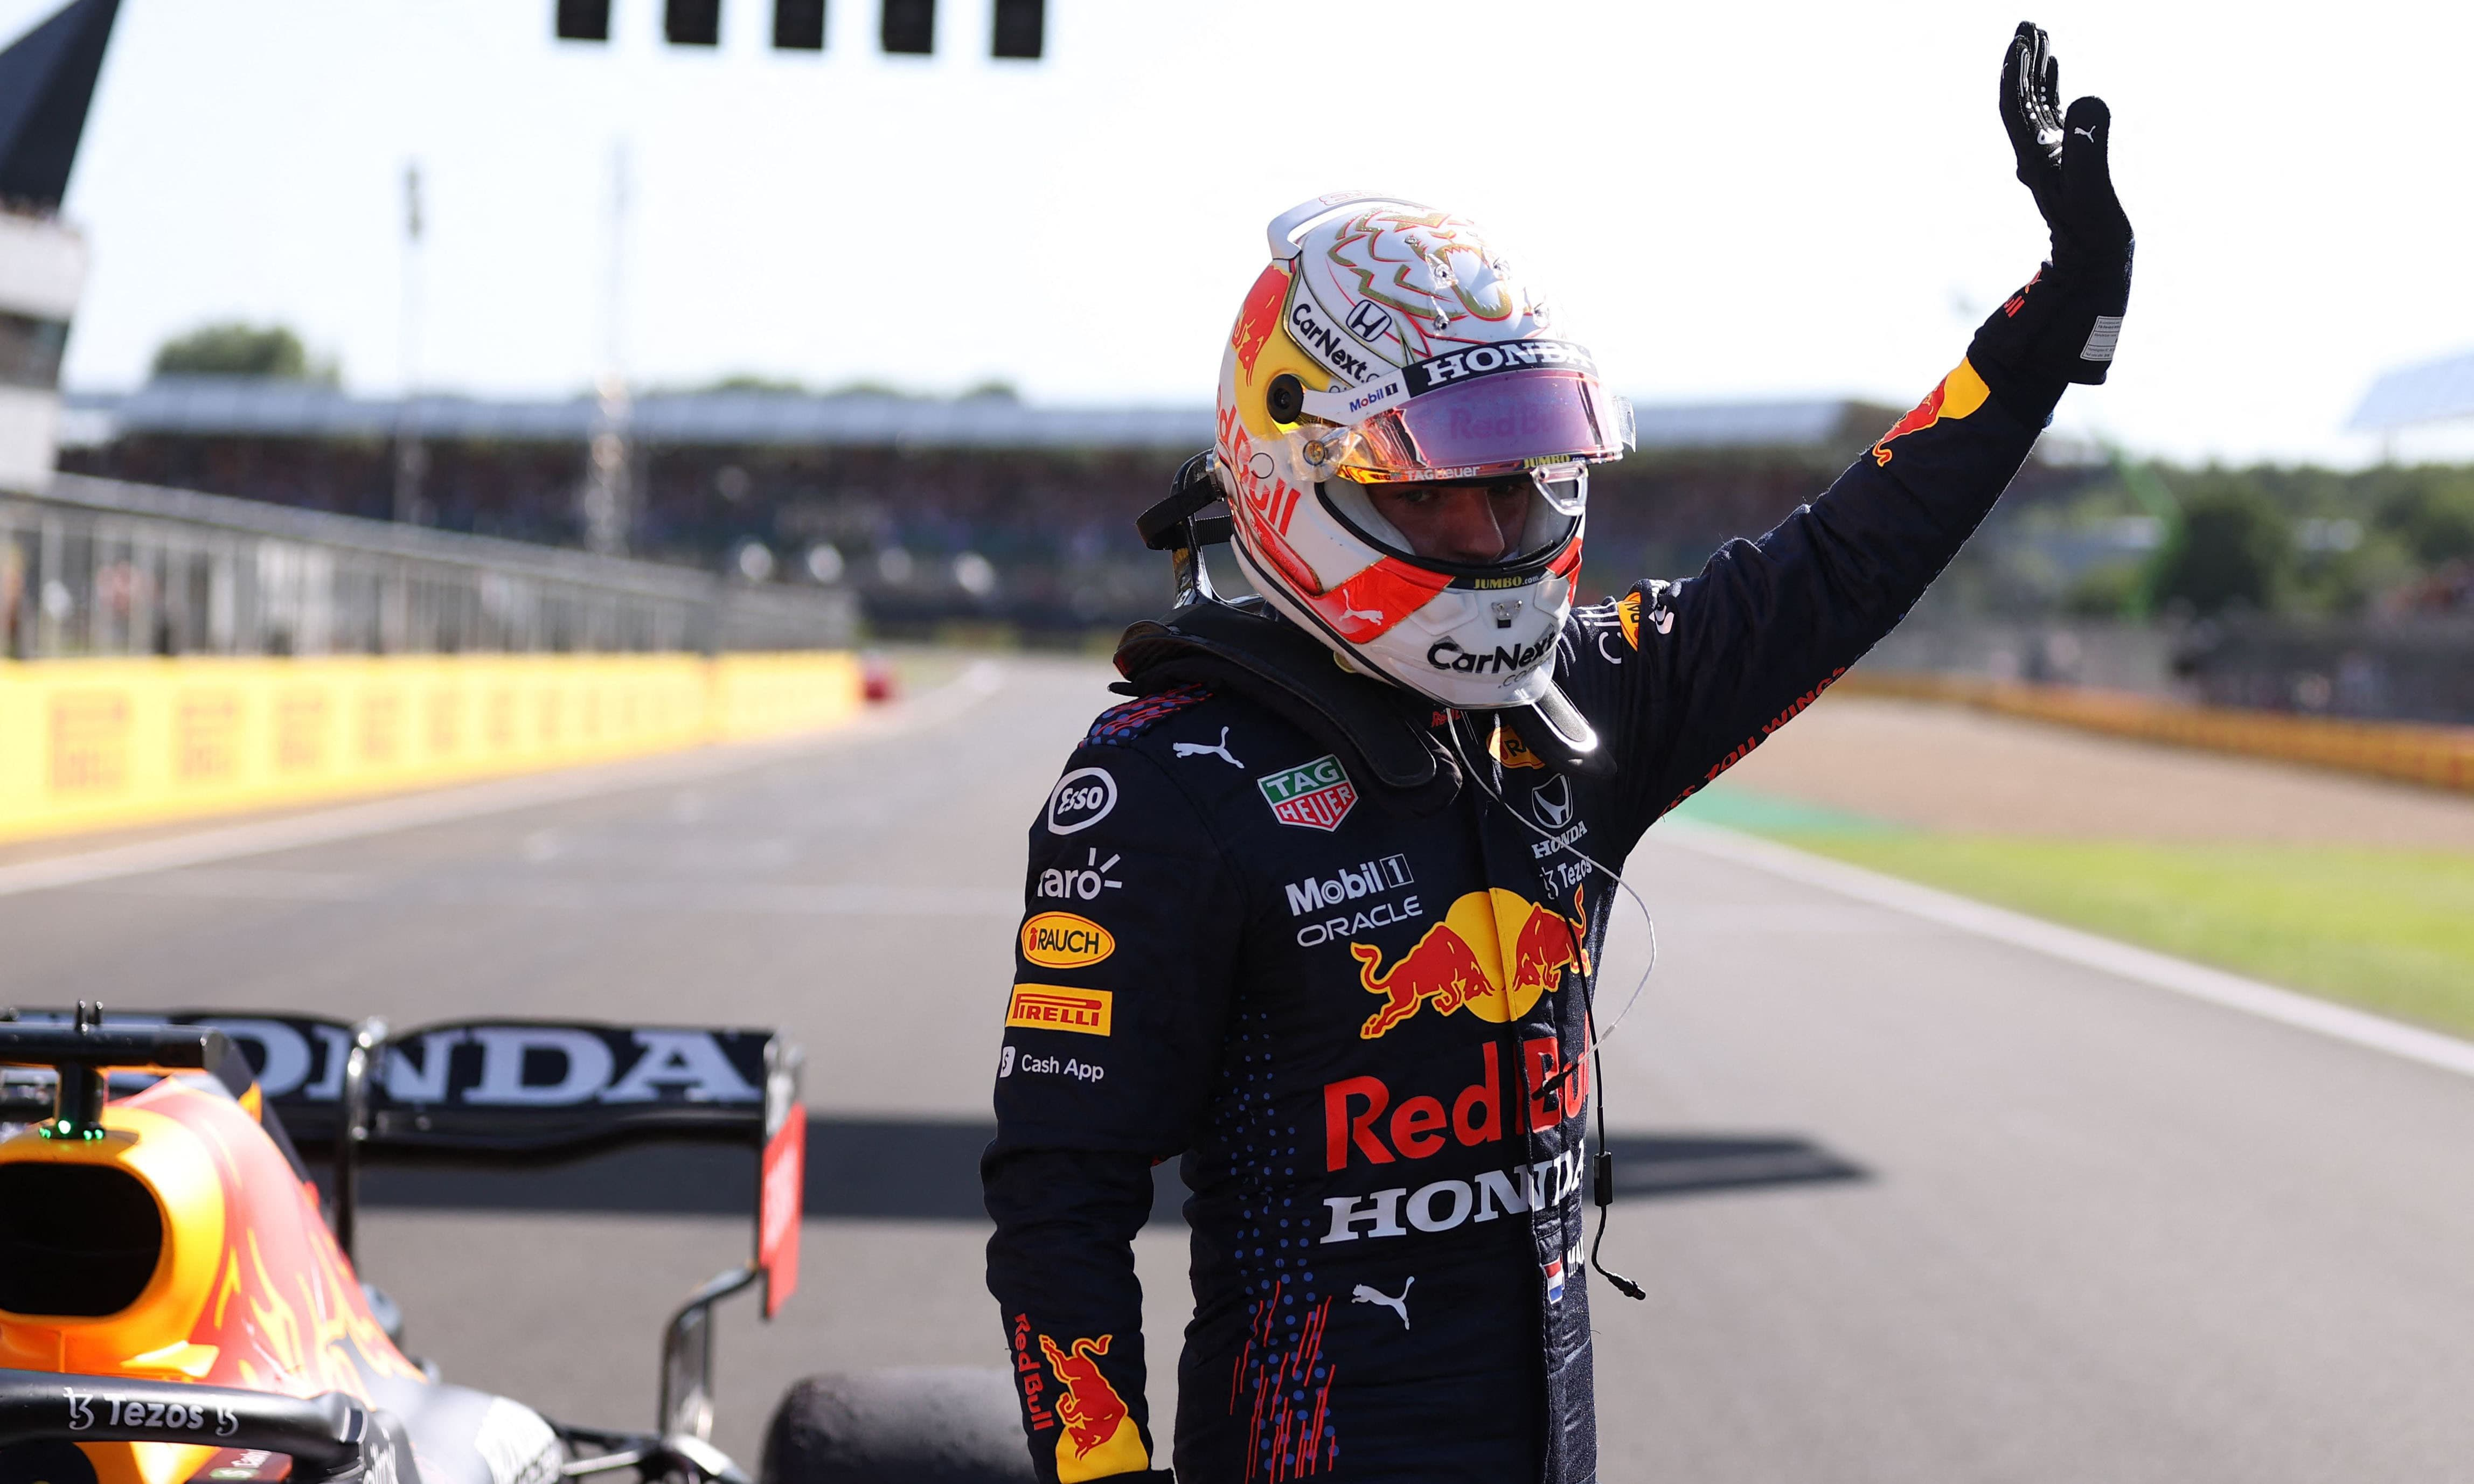 Red Bull's Dutch driver Max Verstappen gestures after the sprint session of the Formula One British Grand Prix at the Silverstone motor racing circuit in Silverstone, central England on Saturday. — AFP